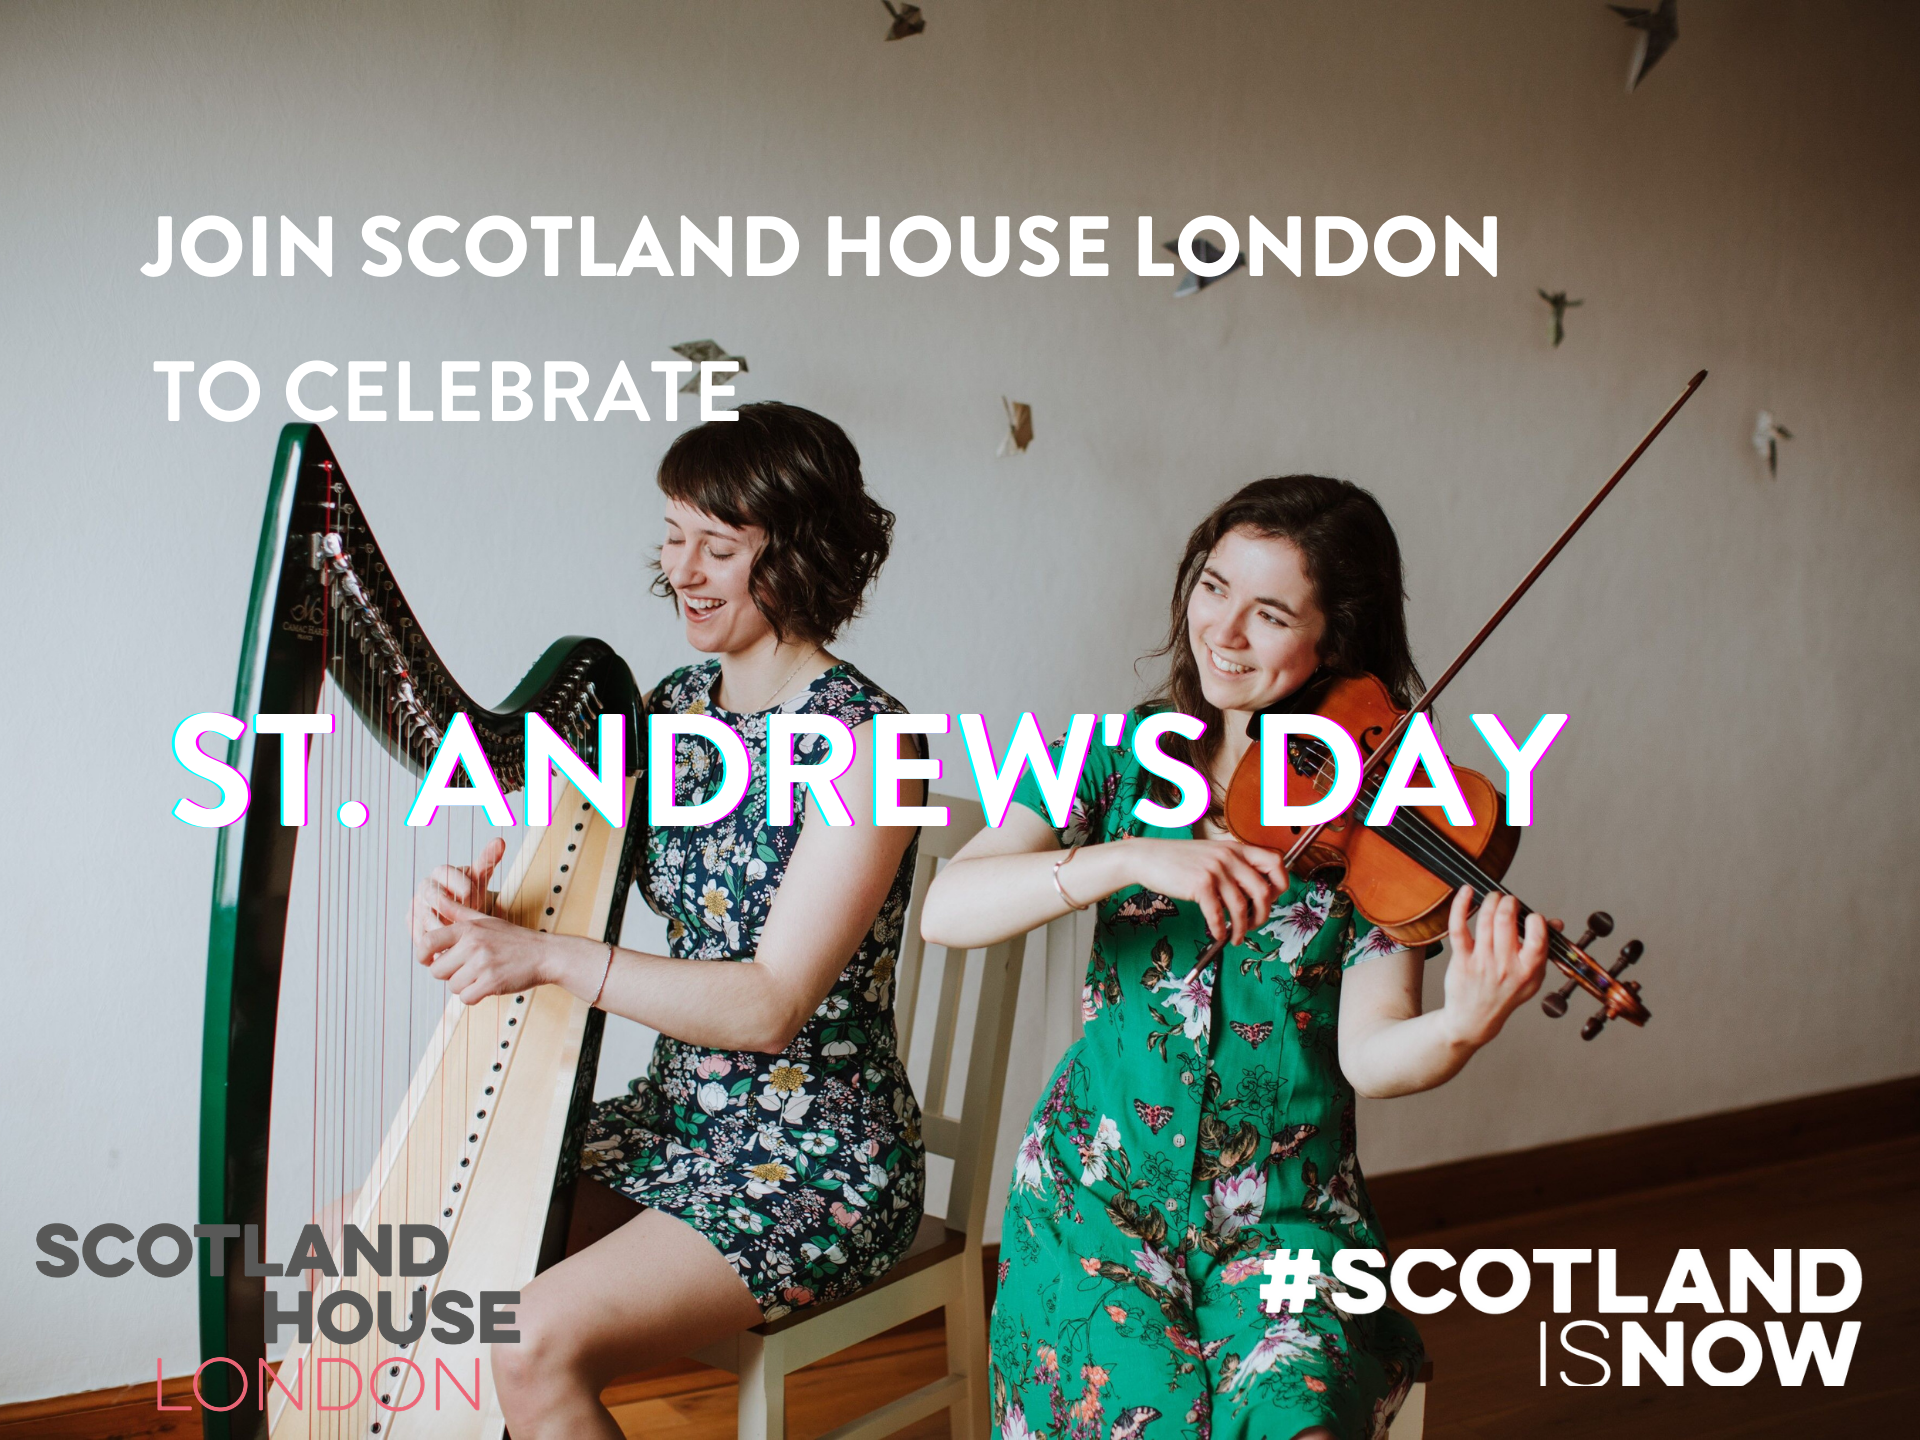 Scotland's Winter Festival - St. Andrew's Day